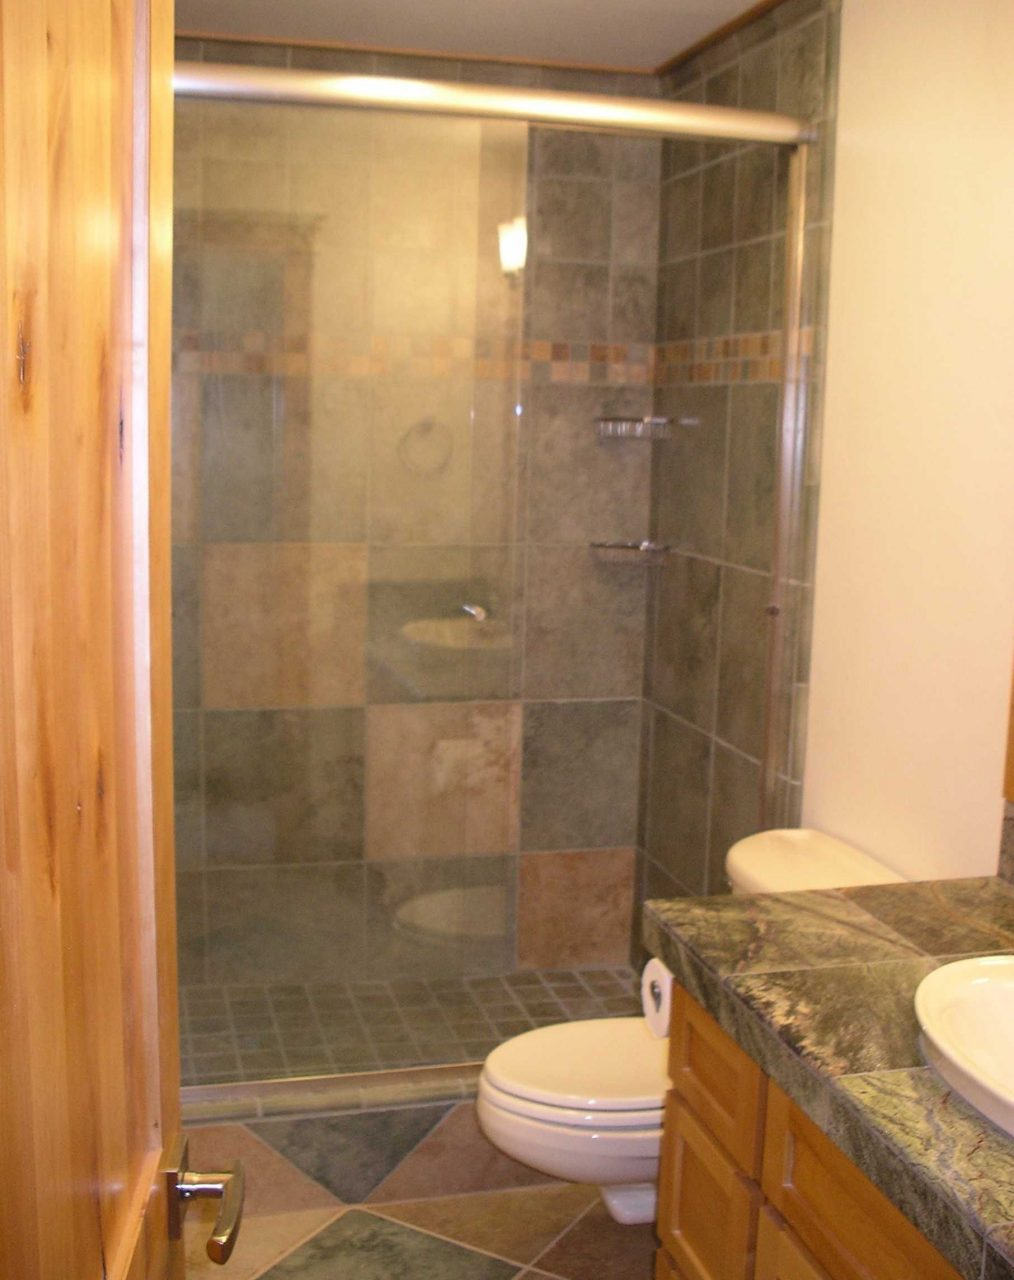 Floor Design Your Small Bathroom Remodel Cost Ideas Free Designs